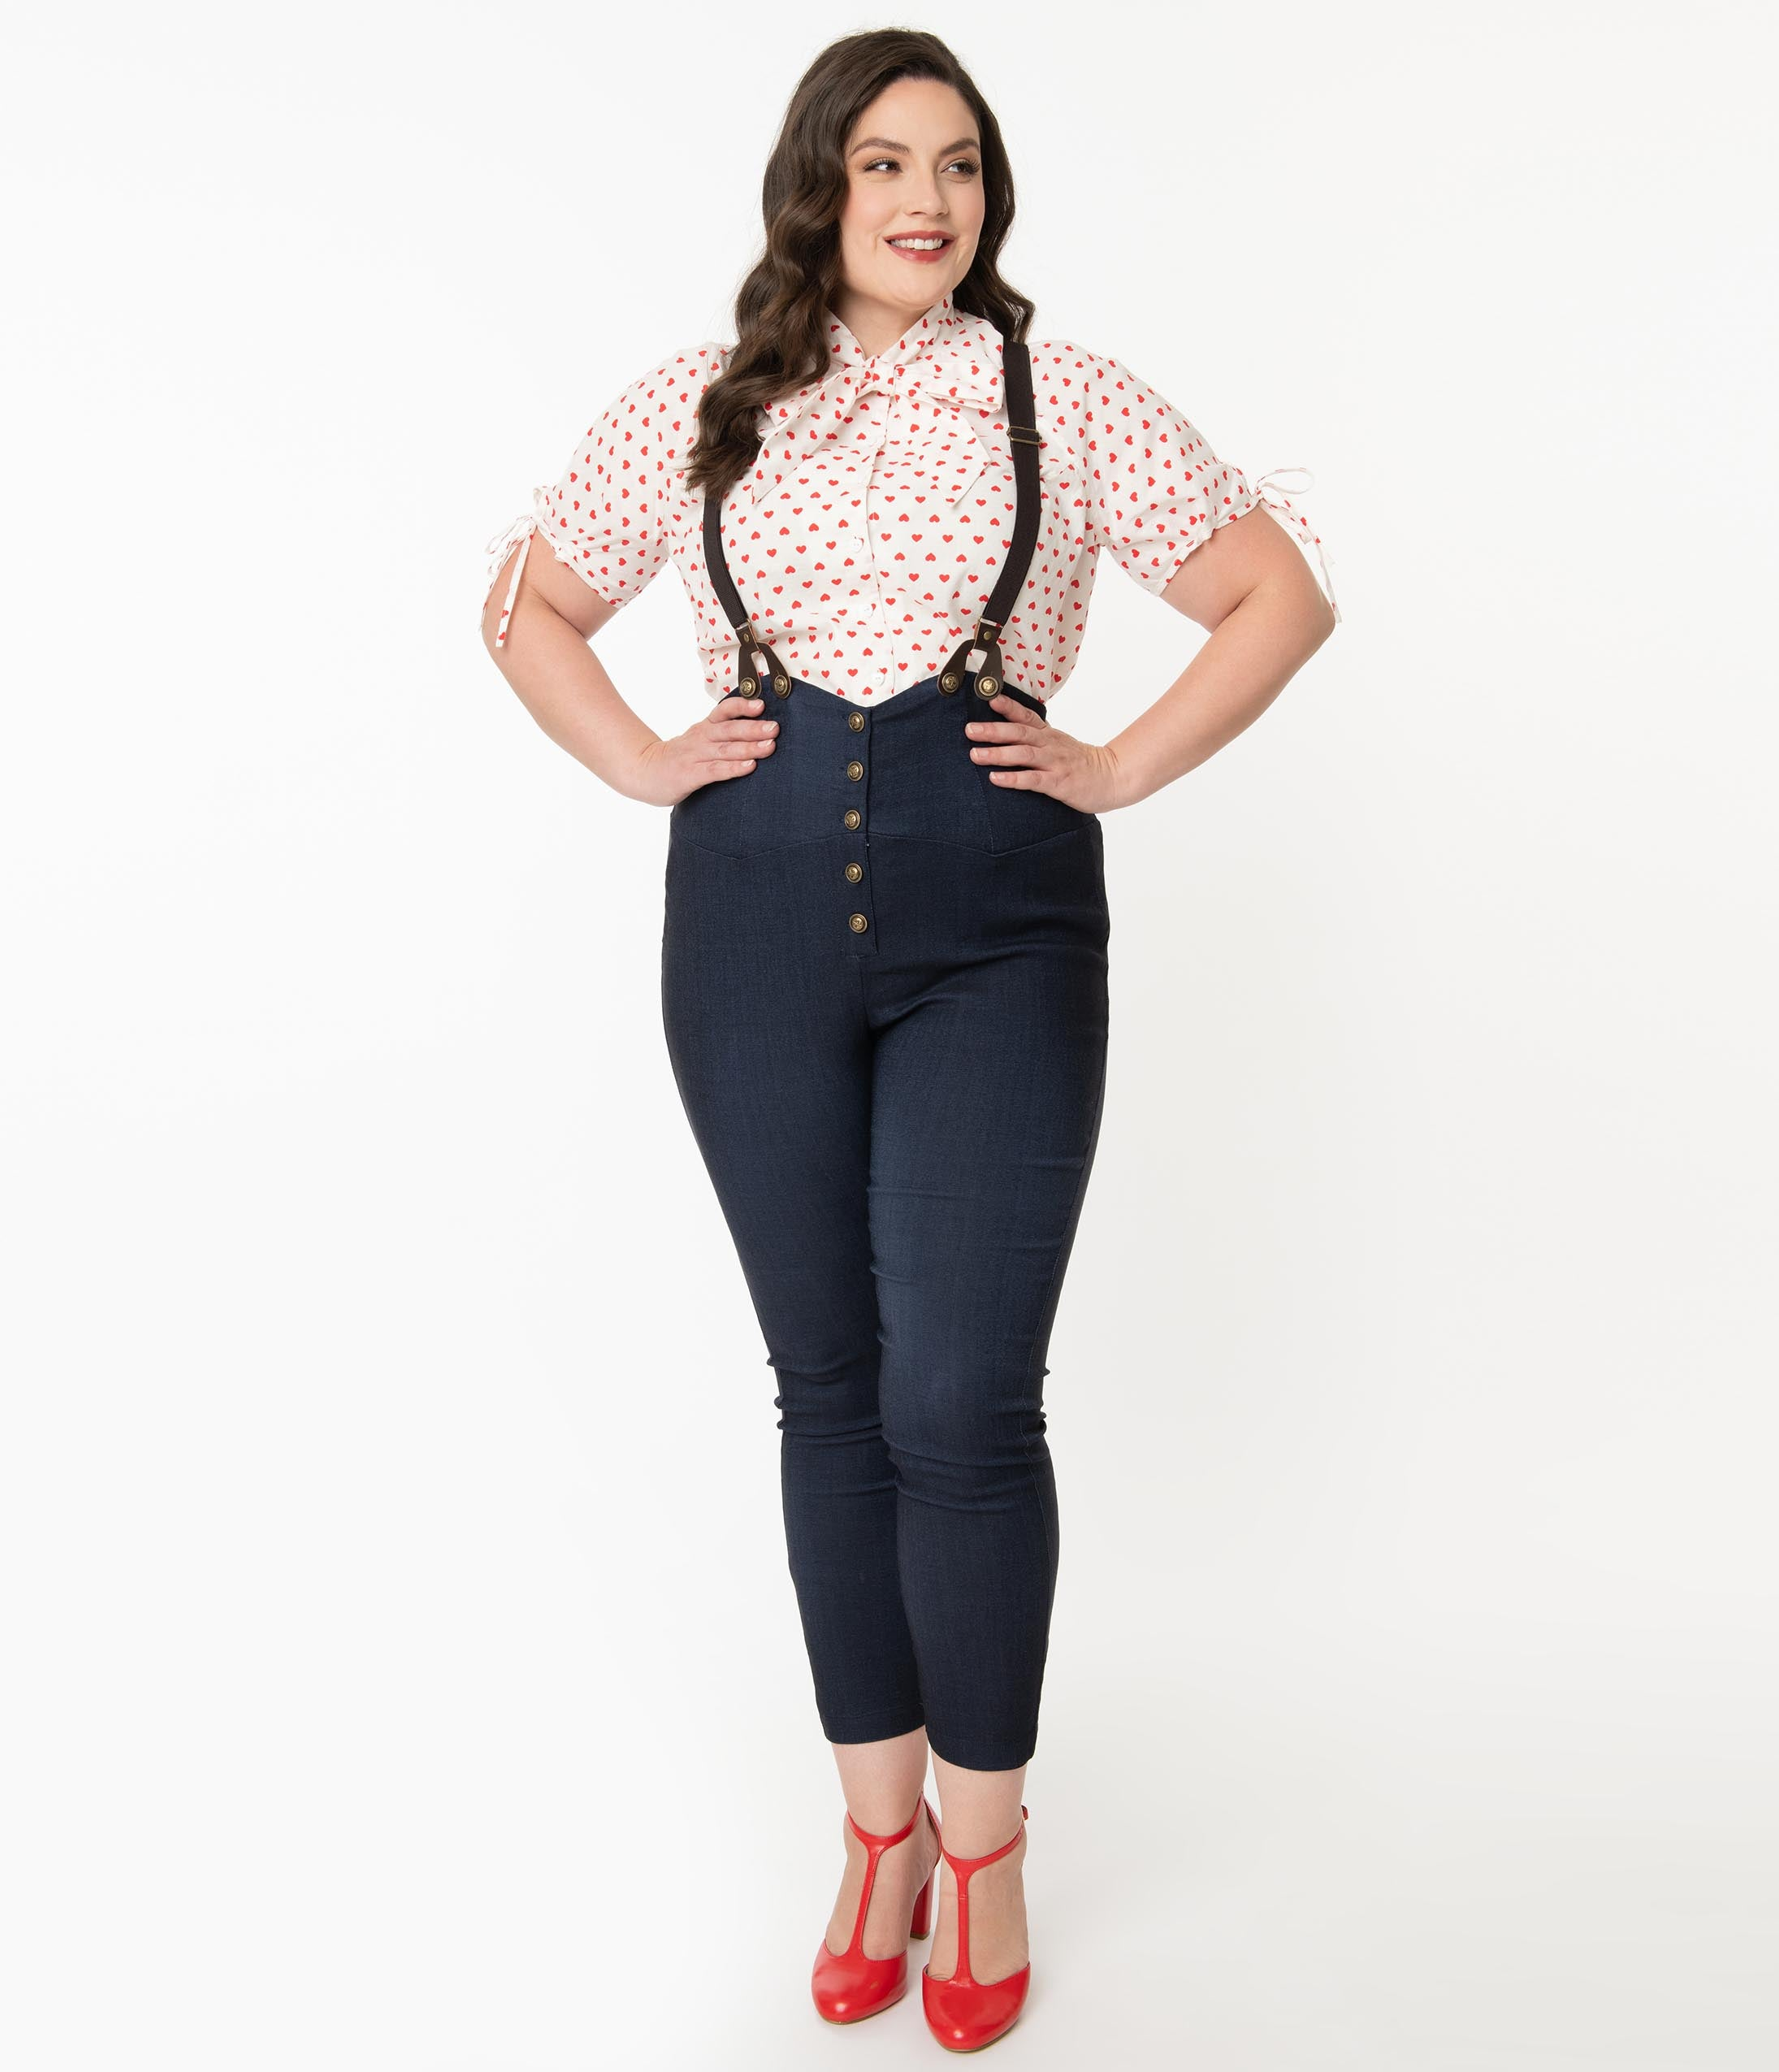 Vintage Overalls 1910s -1950s History & Shop Overalls Unique Vintage Plus Size Dark Blue Denim Moorehead Skinny Suspender Pants $68.00 AT vintagedancer.com